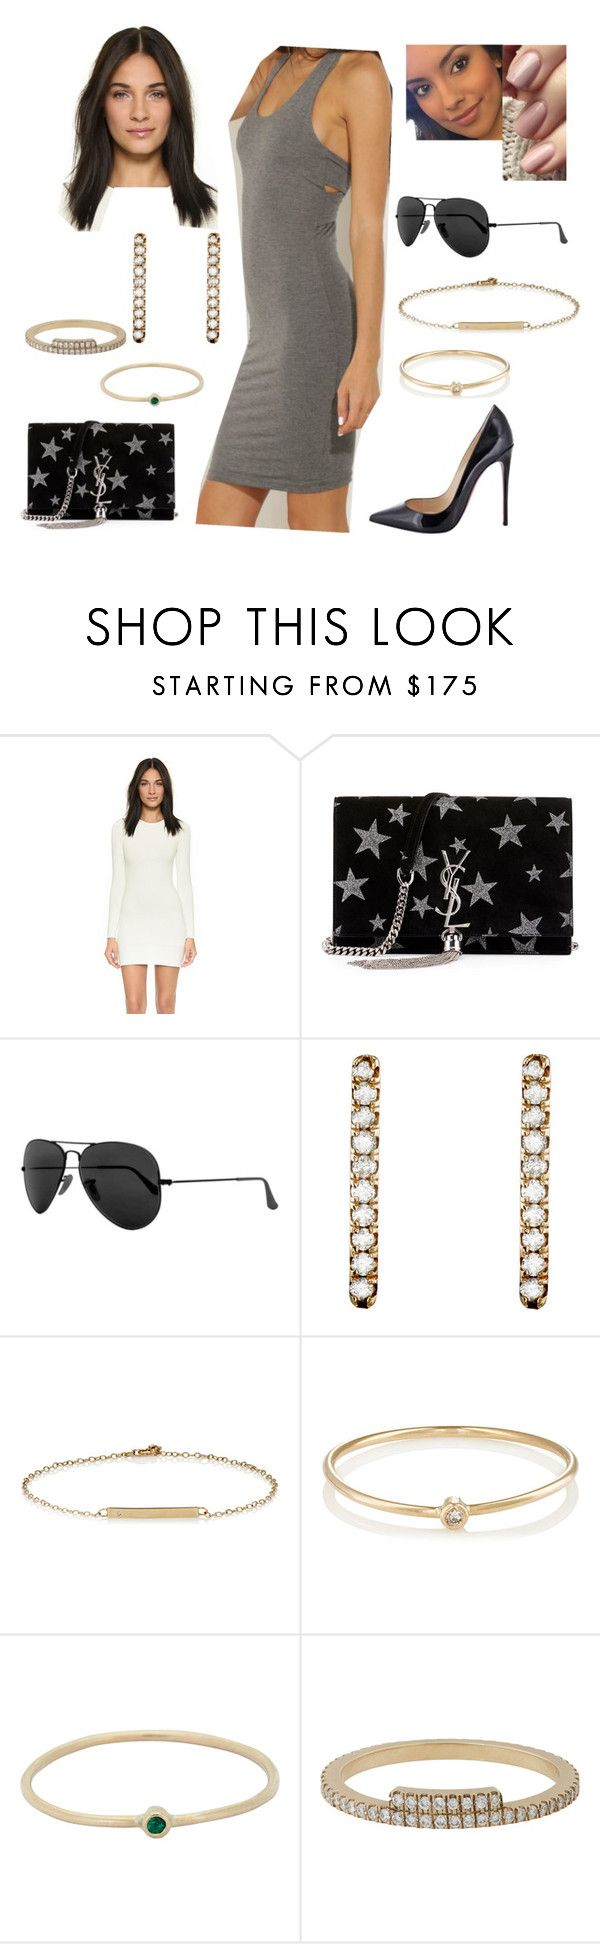 """Bez tytułu #17347"" by sophies18 ❤ liked on Polyvore featuring Christian Louboutin, Torn by Ronny Kobo, Yves Saint Laurent, Ray-Ban, Grace Lee Designs, Loren Stewart, Jennifer Meyer Jewelry and Monique Péan"